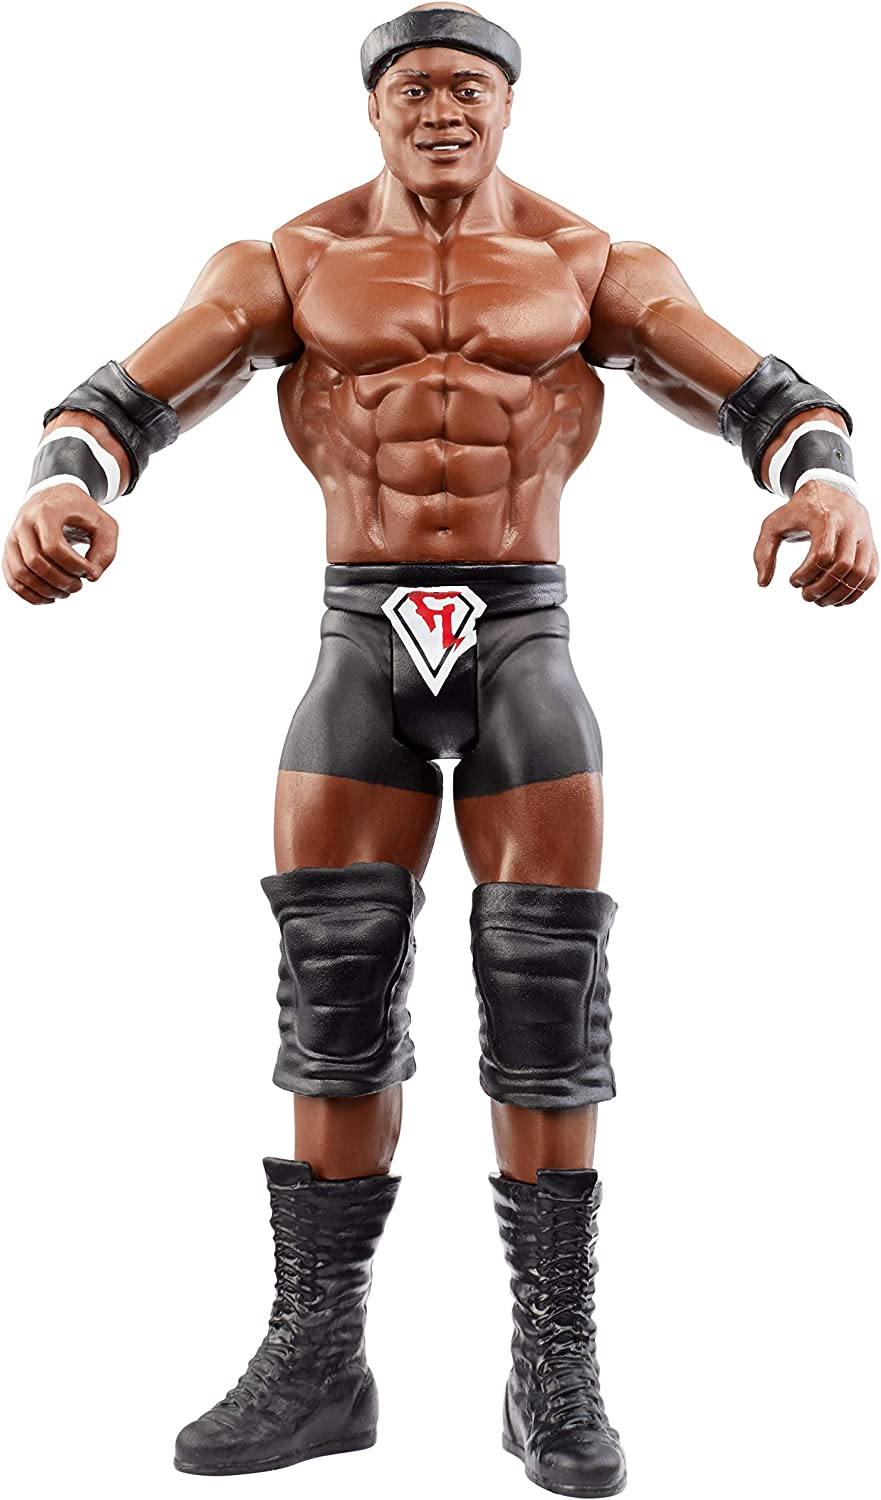 Wwe Elite Collection Bobby Lashley serie 69 lucha libre figura de acción